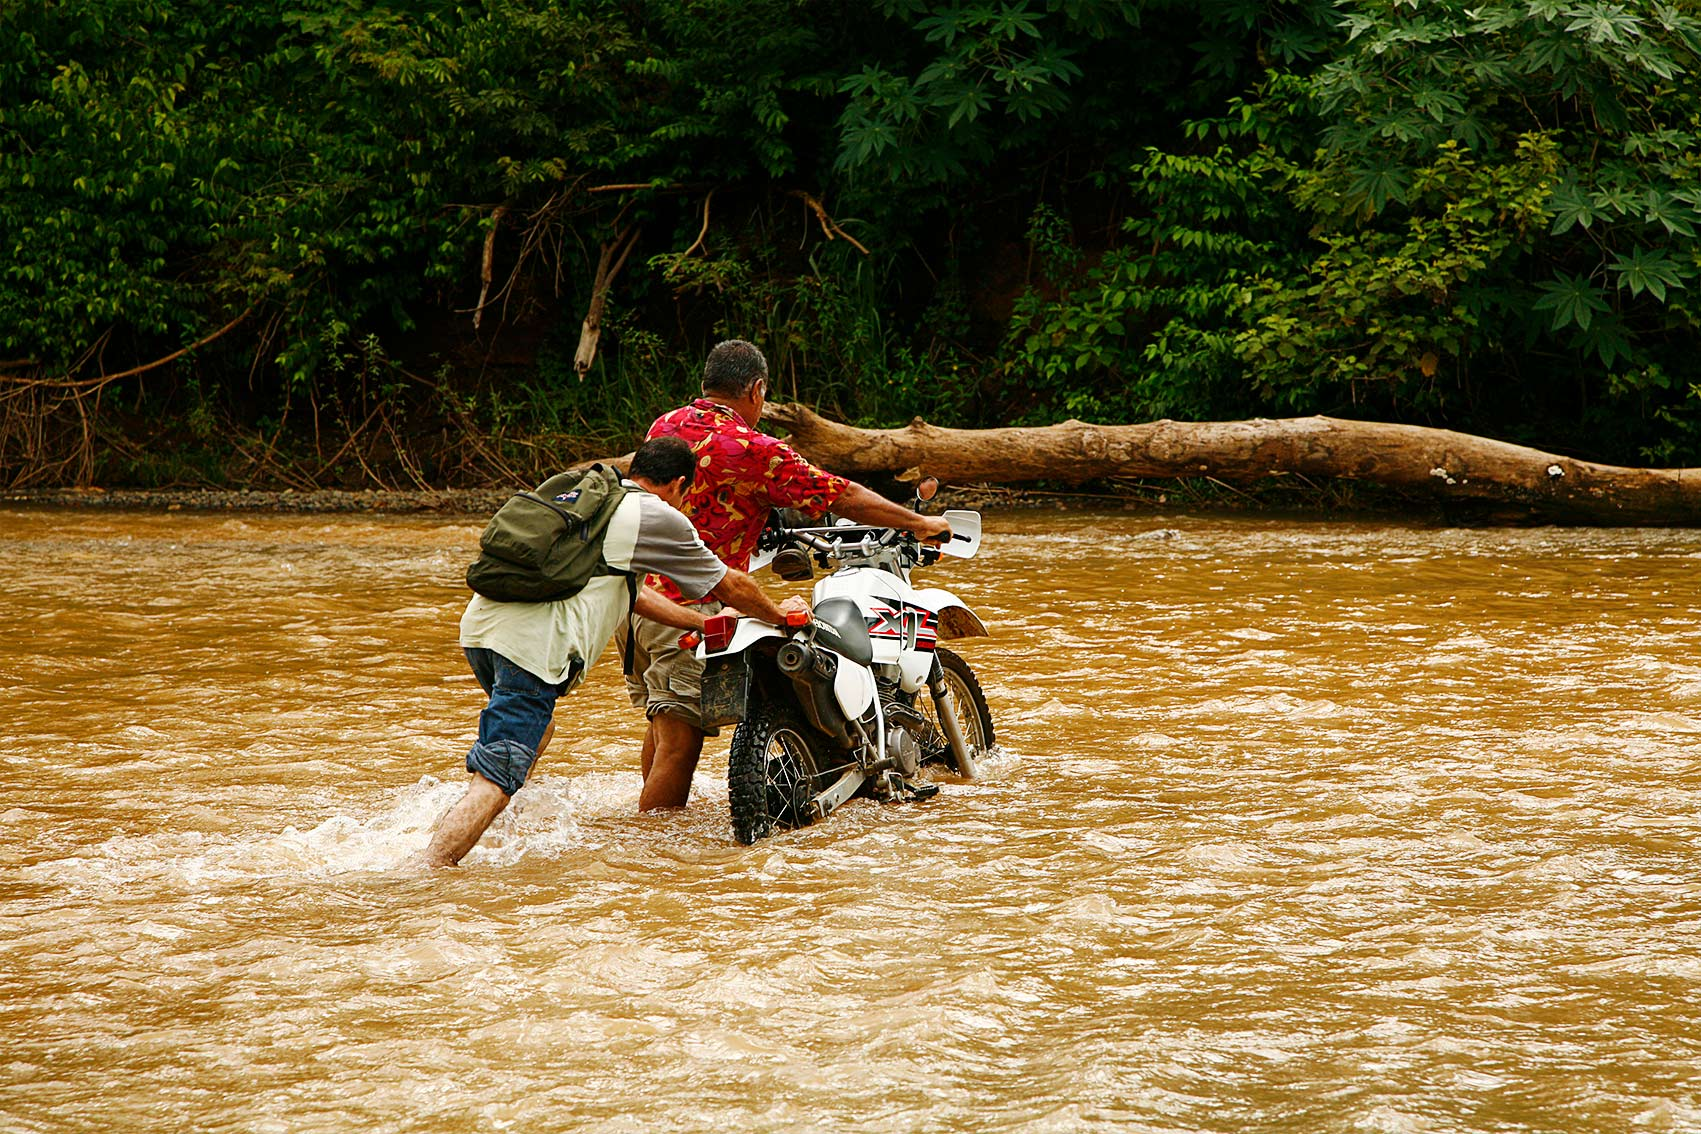 Costa_Rica_Motorcycle